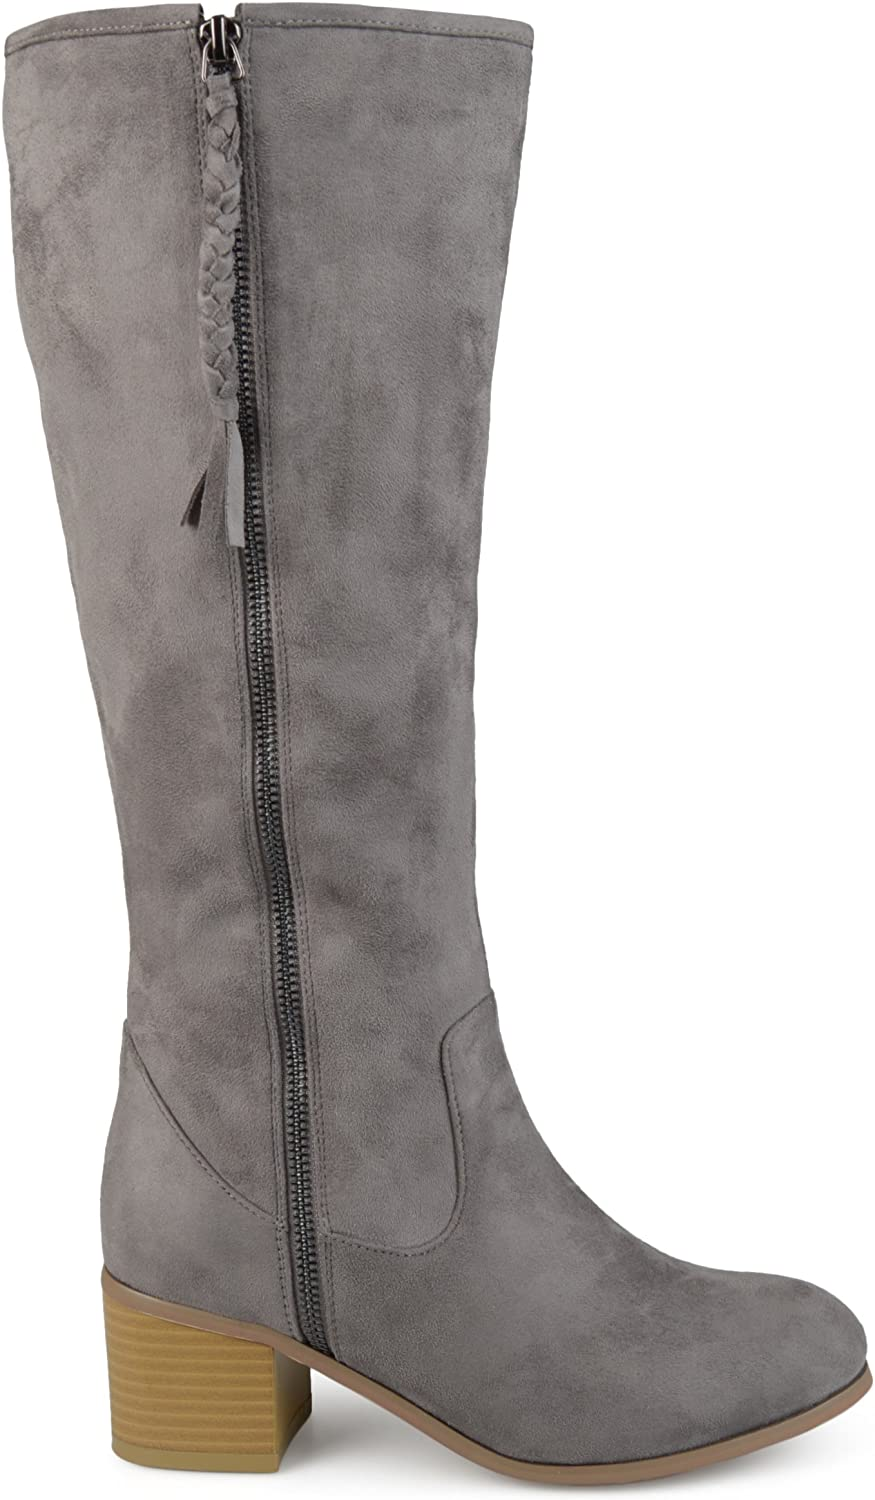 Brinley Co. Womens Regular and Wide Calf Faux Suede Mid-Calf Stacked Wood Heel Boots Grey, 9.5 Wide Calf US